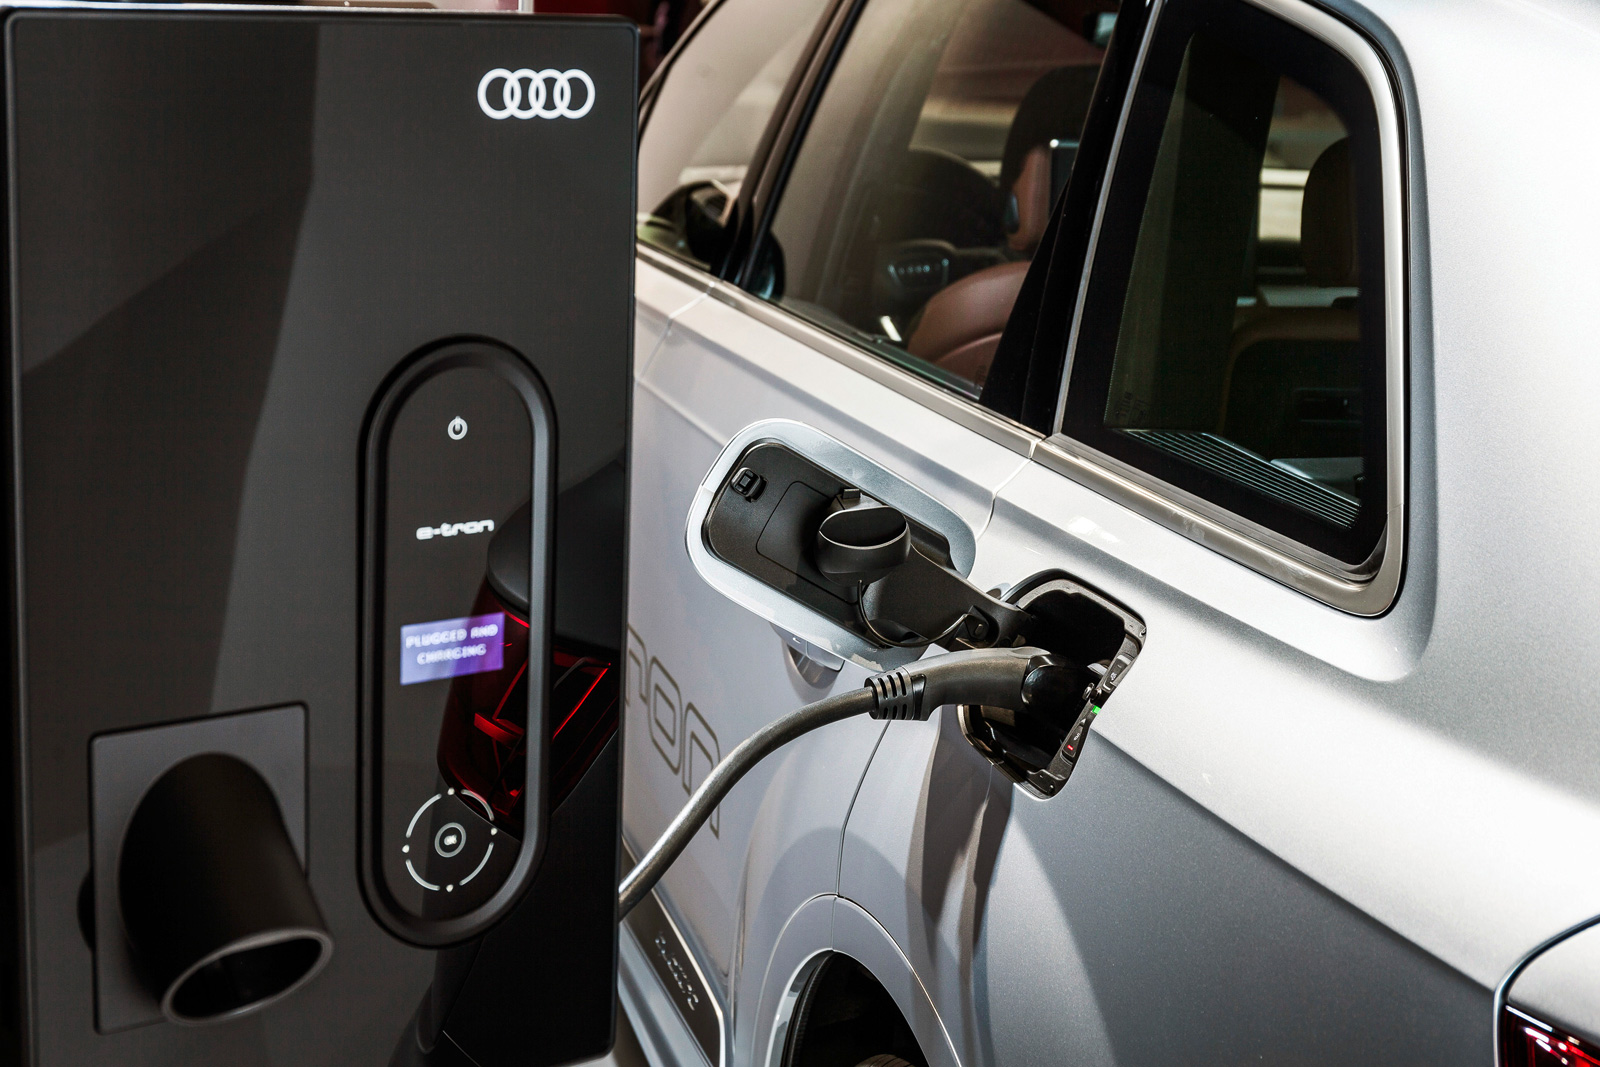 photo image Audi smart home battery grid creates a 'virtual power plant'